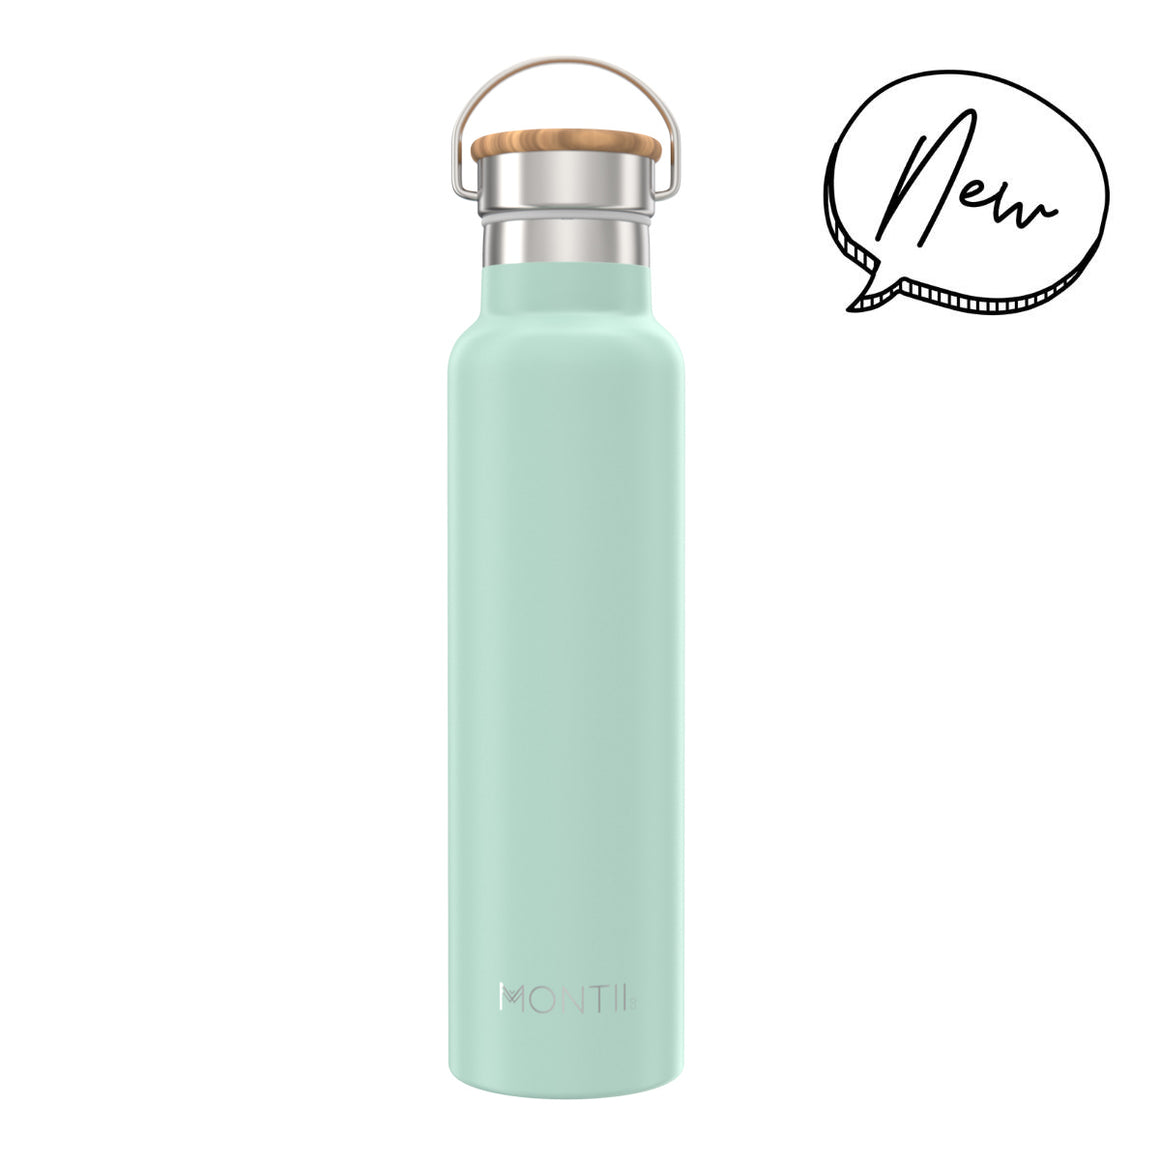 MontiiCo MEGA Insulated Drink Bottle (1000mls) - Eucalyptus